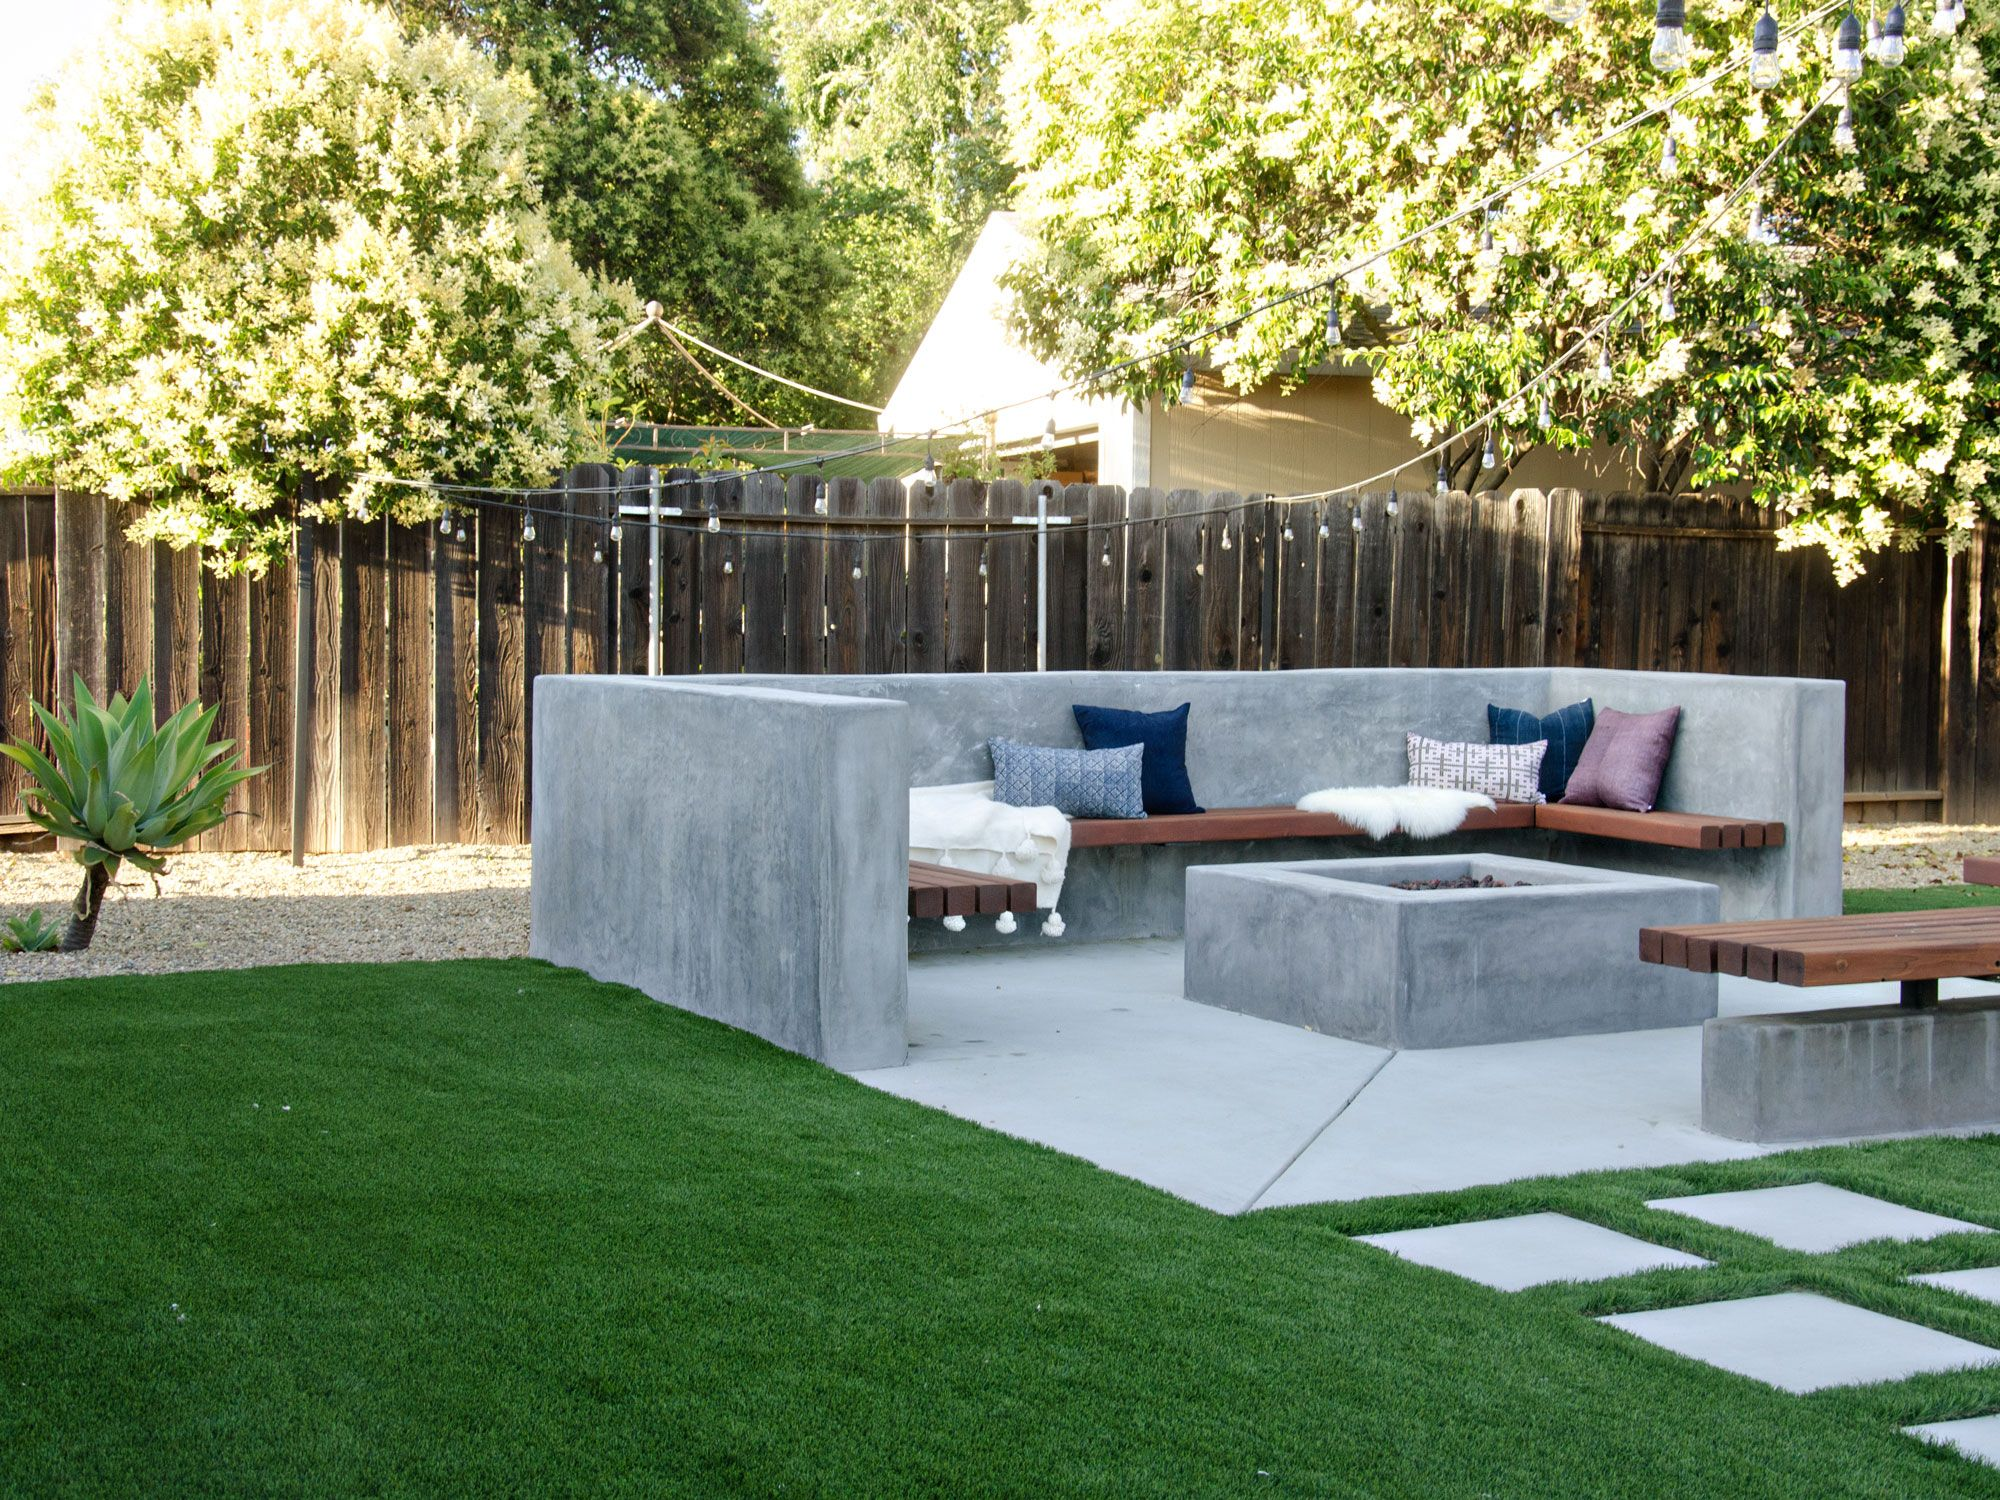 Bon Modern California Backyard Patio Reveal | BrittanyMakes